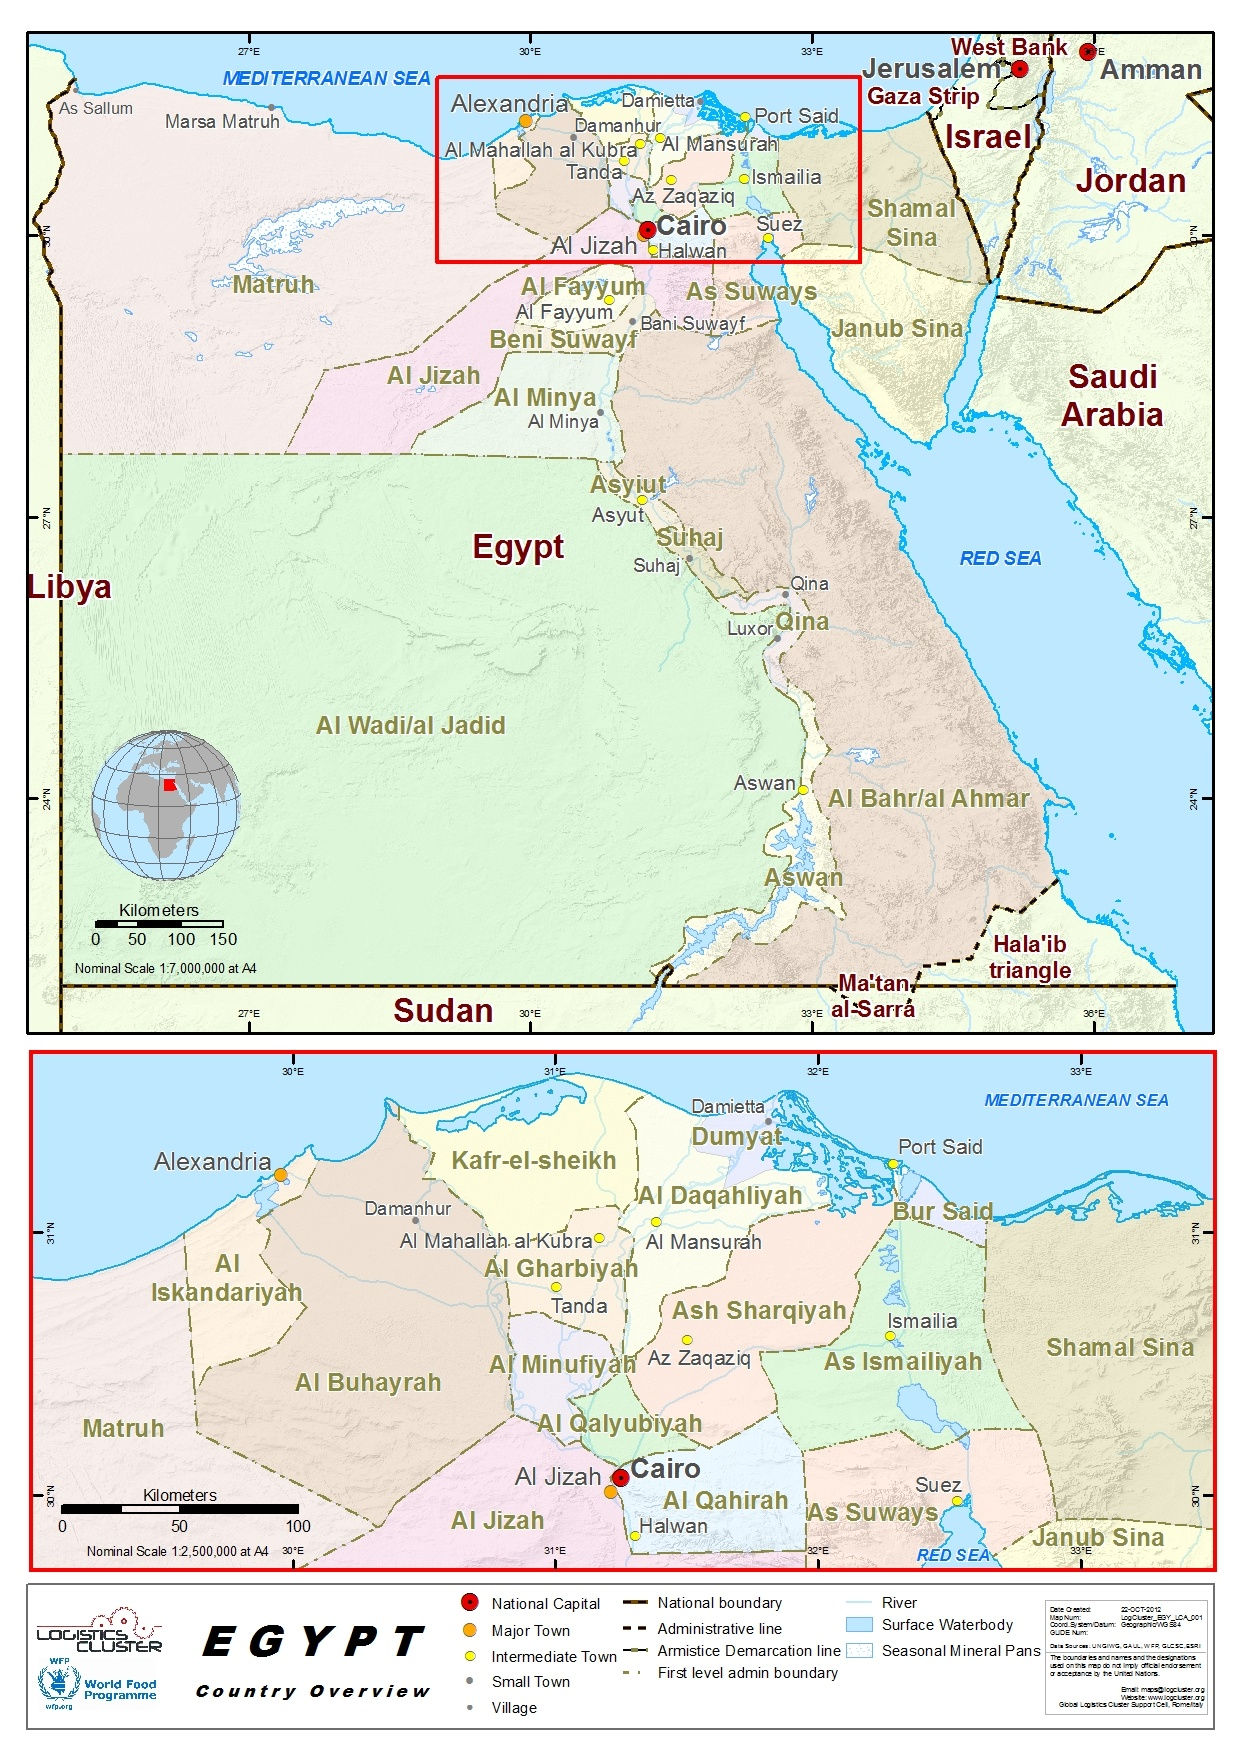 Egypt Country Profile Logistics Capacity Assessment Digital - What country is egypt in